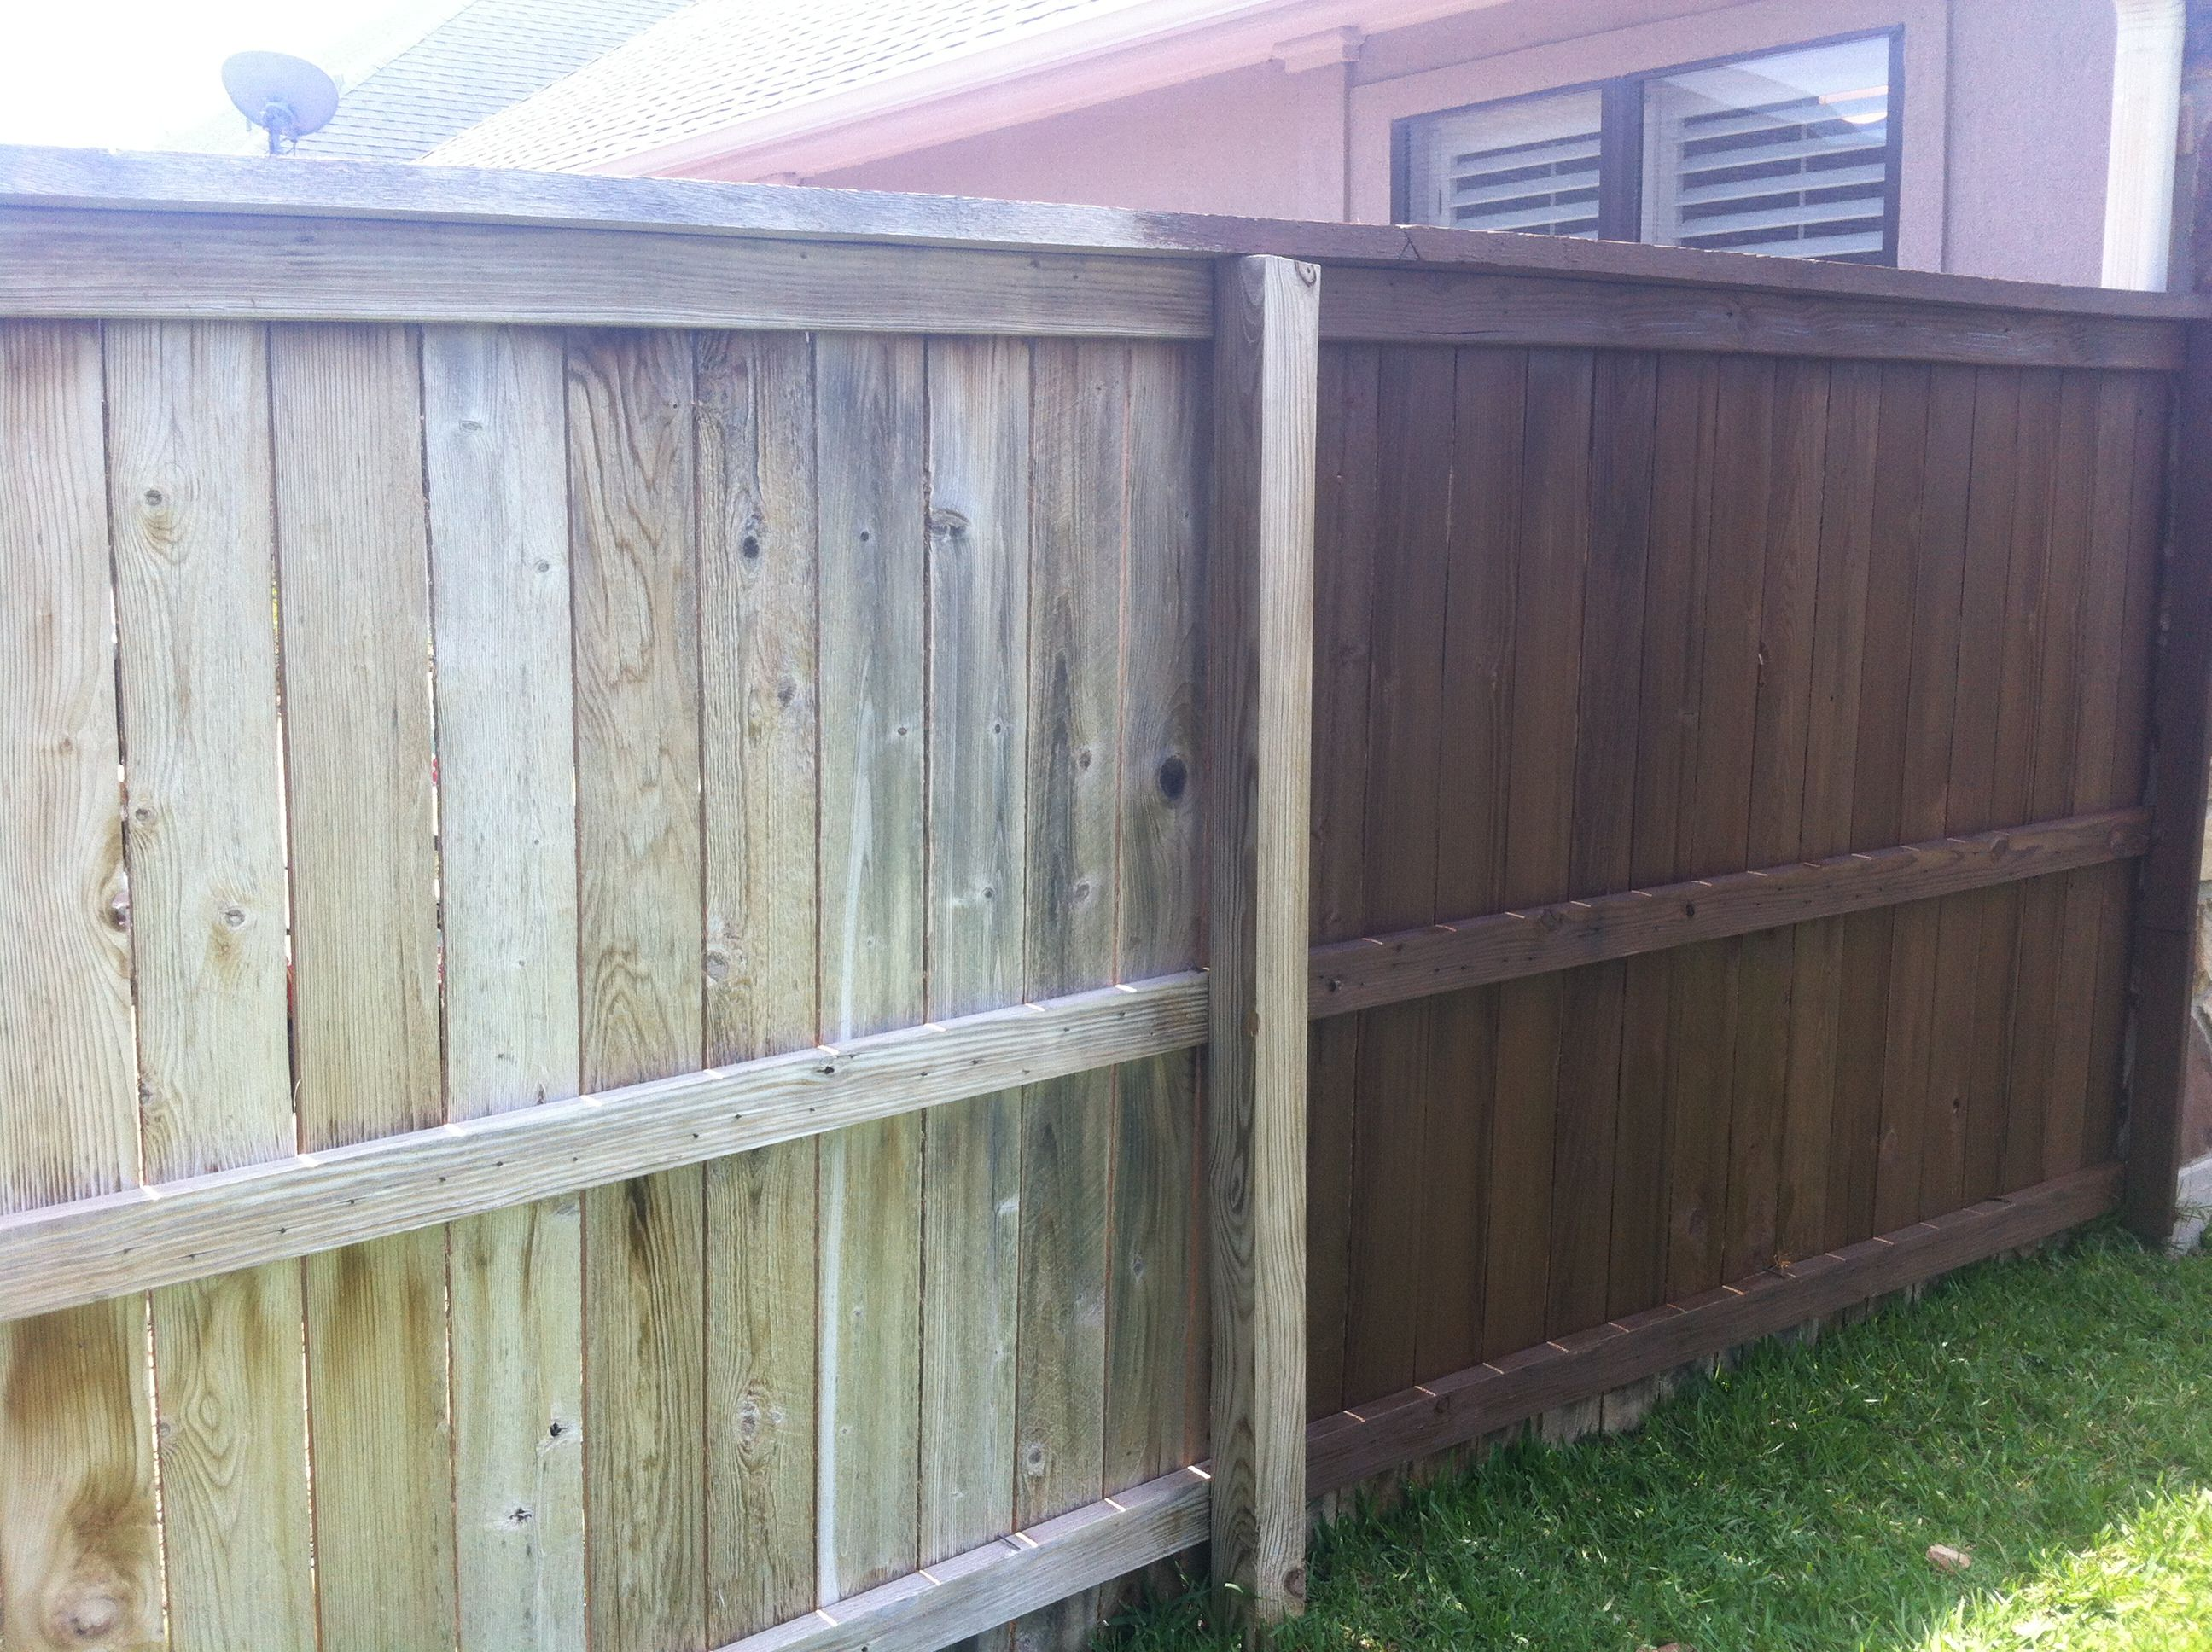 Staining A Wood Fence With Sprayer